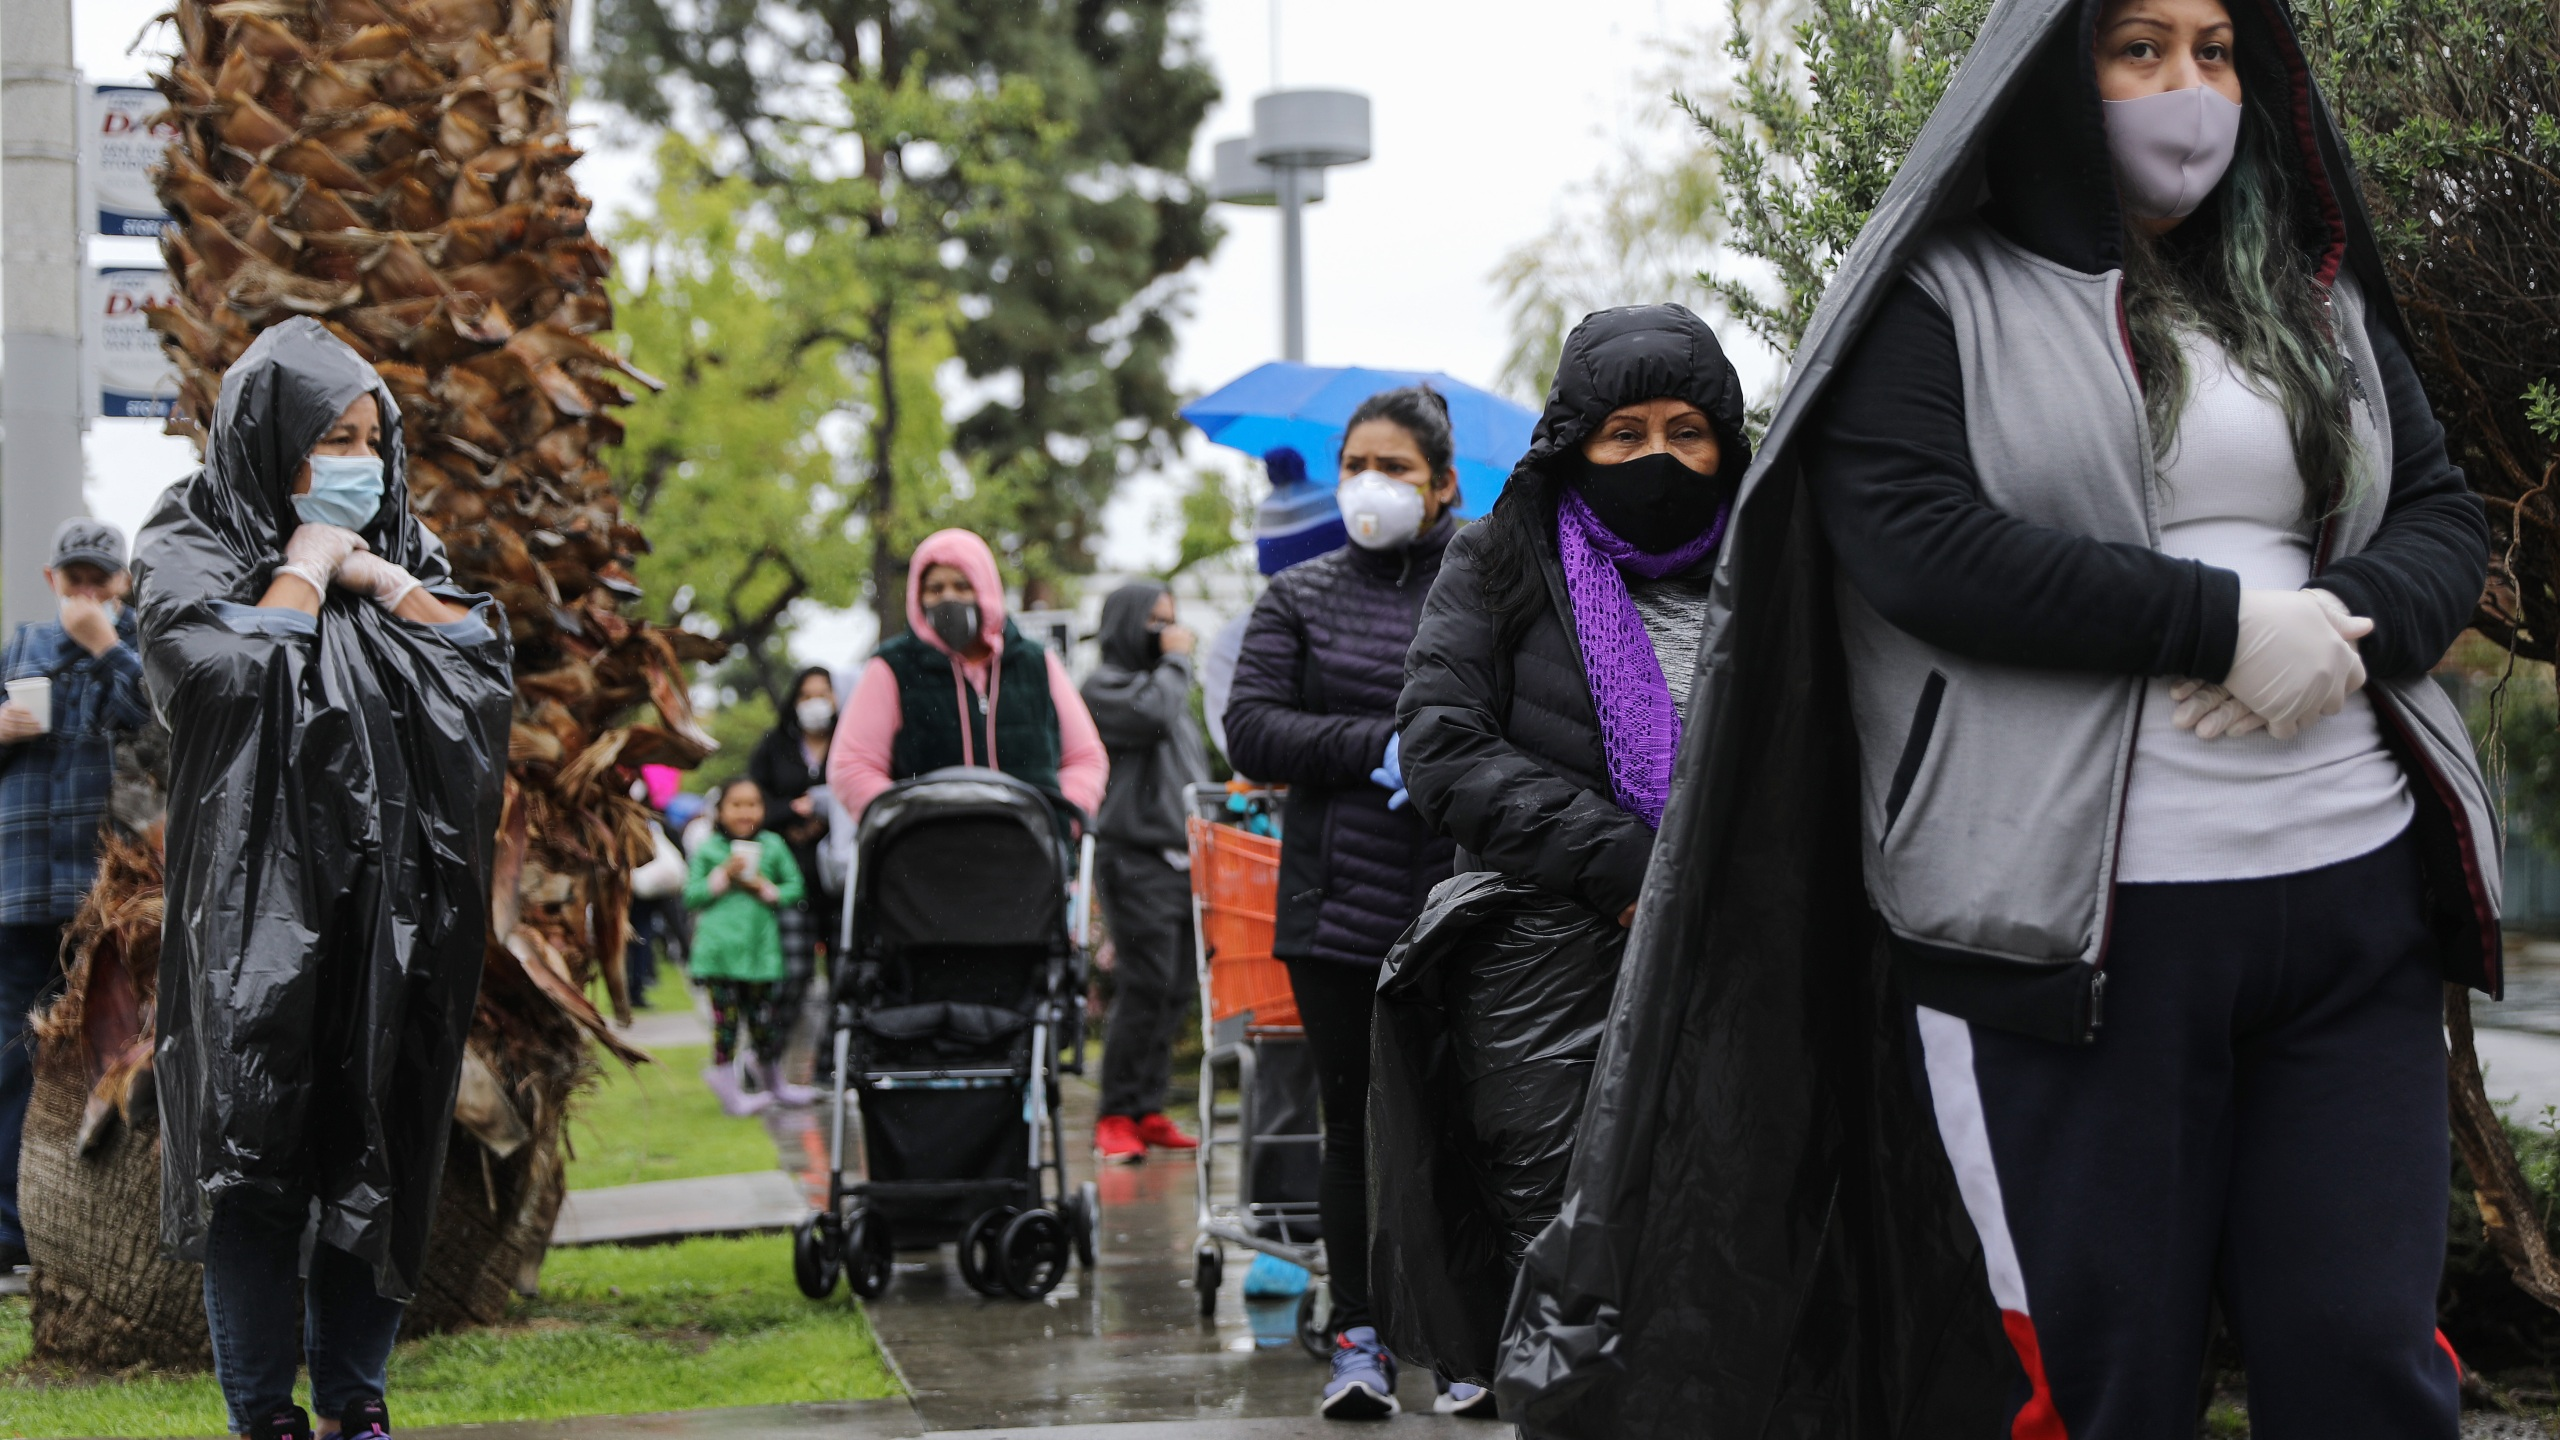 Juana Gomez, 50, from North Hollywood, wears a face mask and gloves, while using a trash bag to protect against the rain, as she waits in line to receive food at a Food Bank distribution for those in need as the coronavirus pandemic continues on April 9, 2020, in Van Nuys, Calif. (Mario Tama/Getty Images)